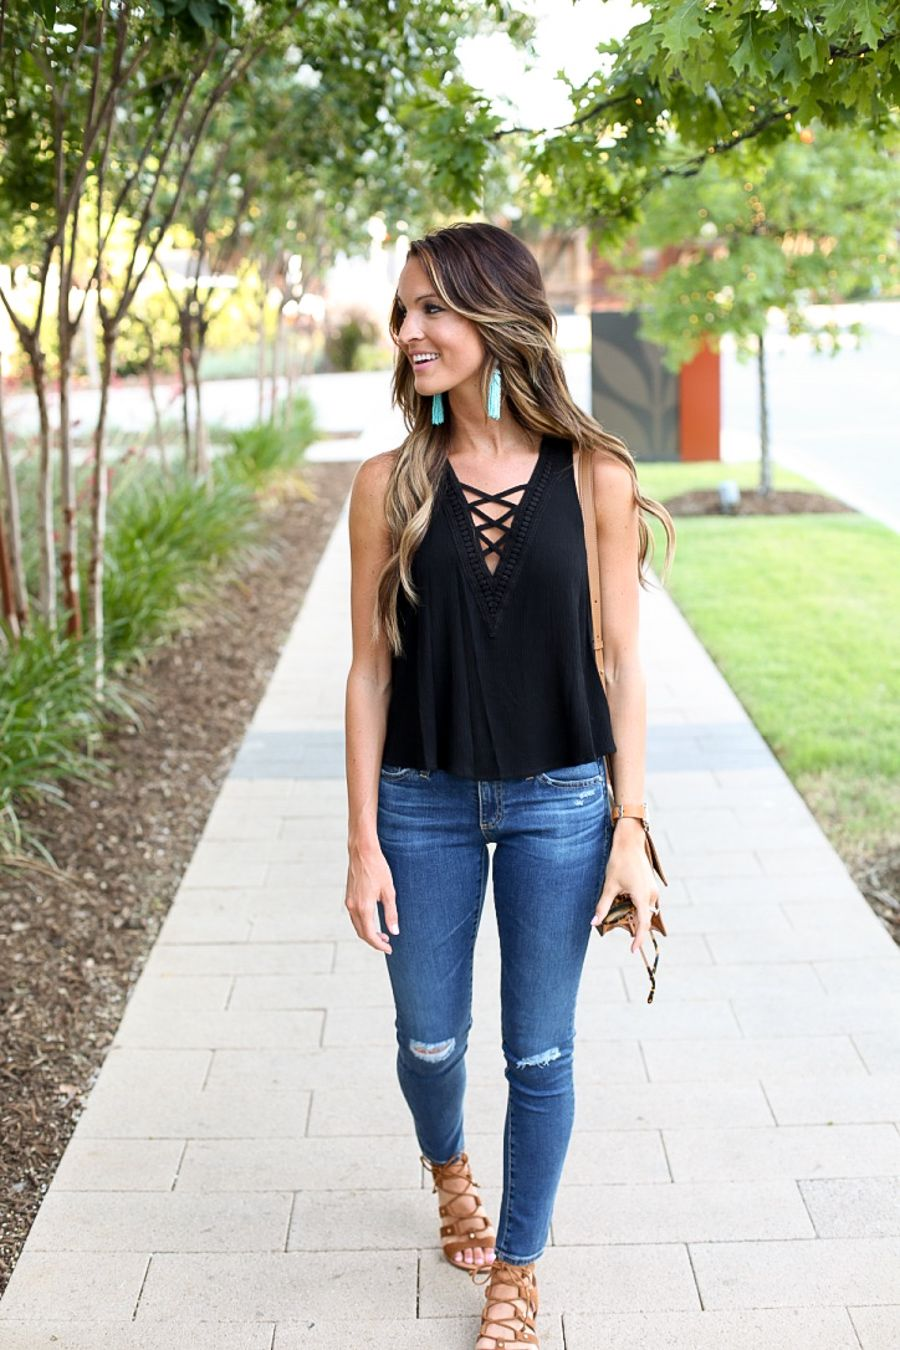 21 Casual Summer Outfits 2017 Ideas